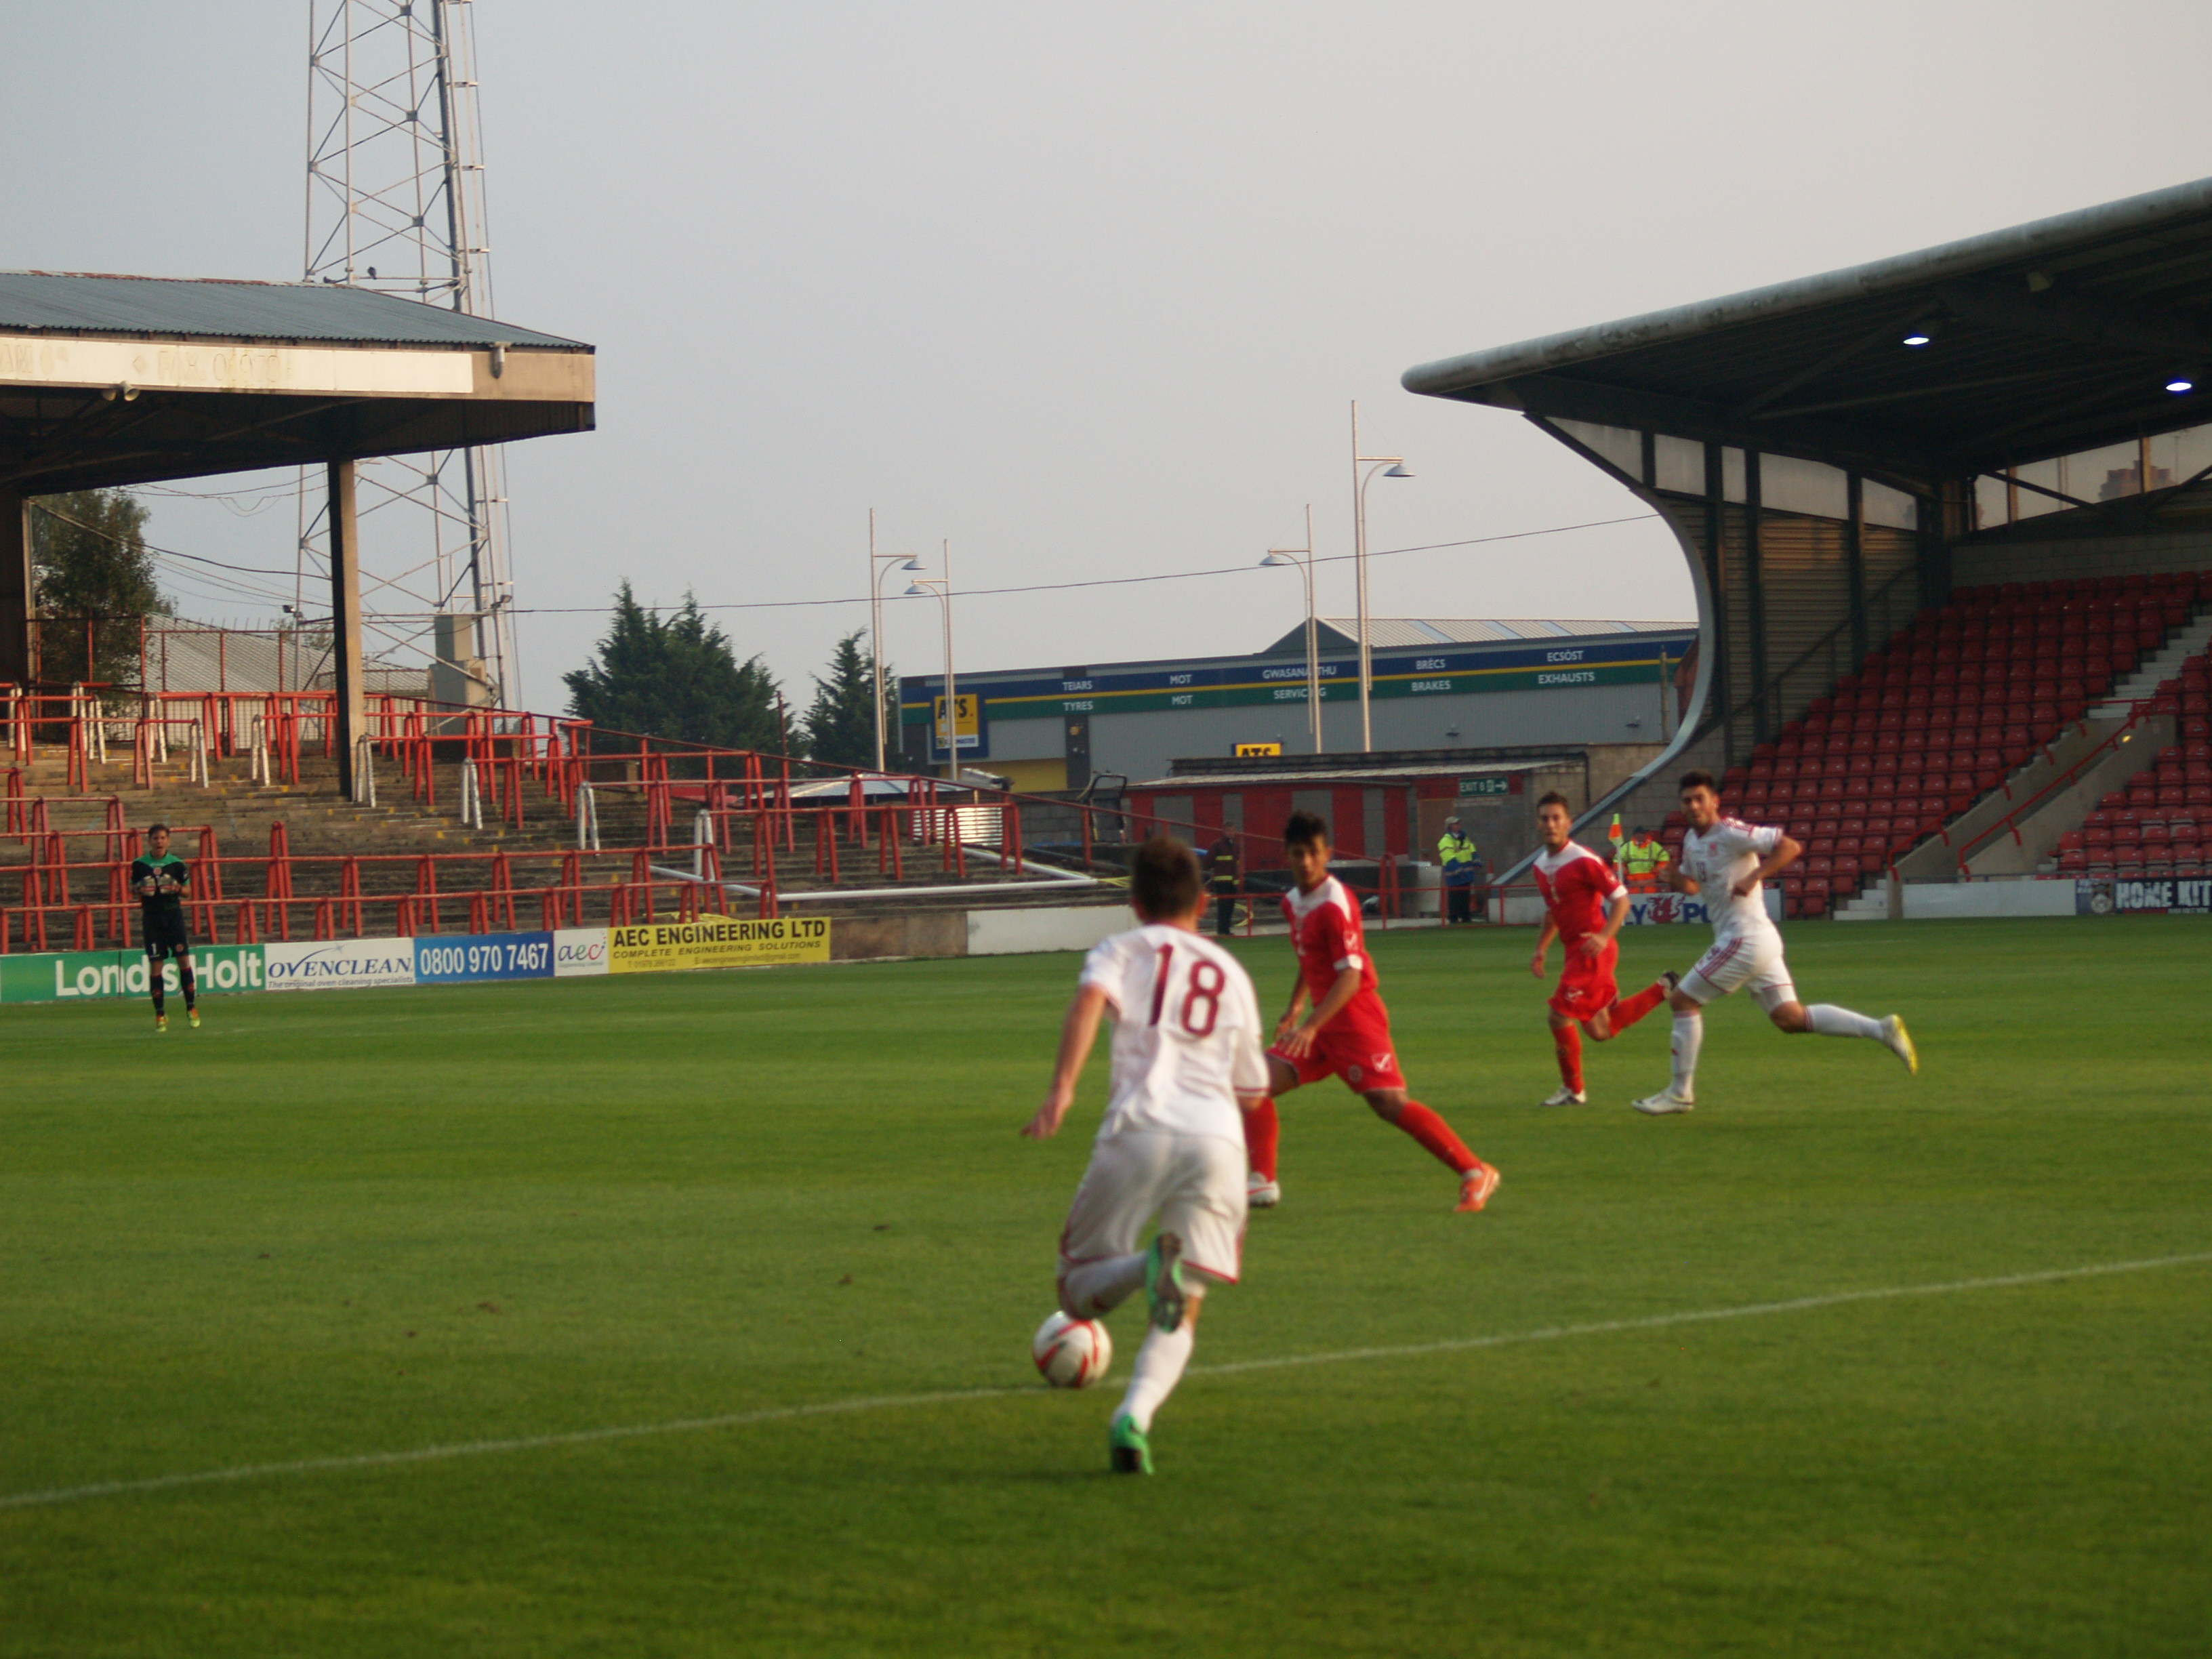 Wales Under 17 Men v Malta - Game 2 - 5-1 to Wales